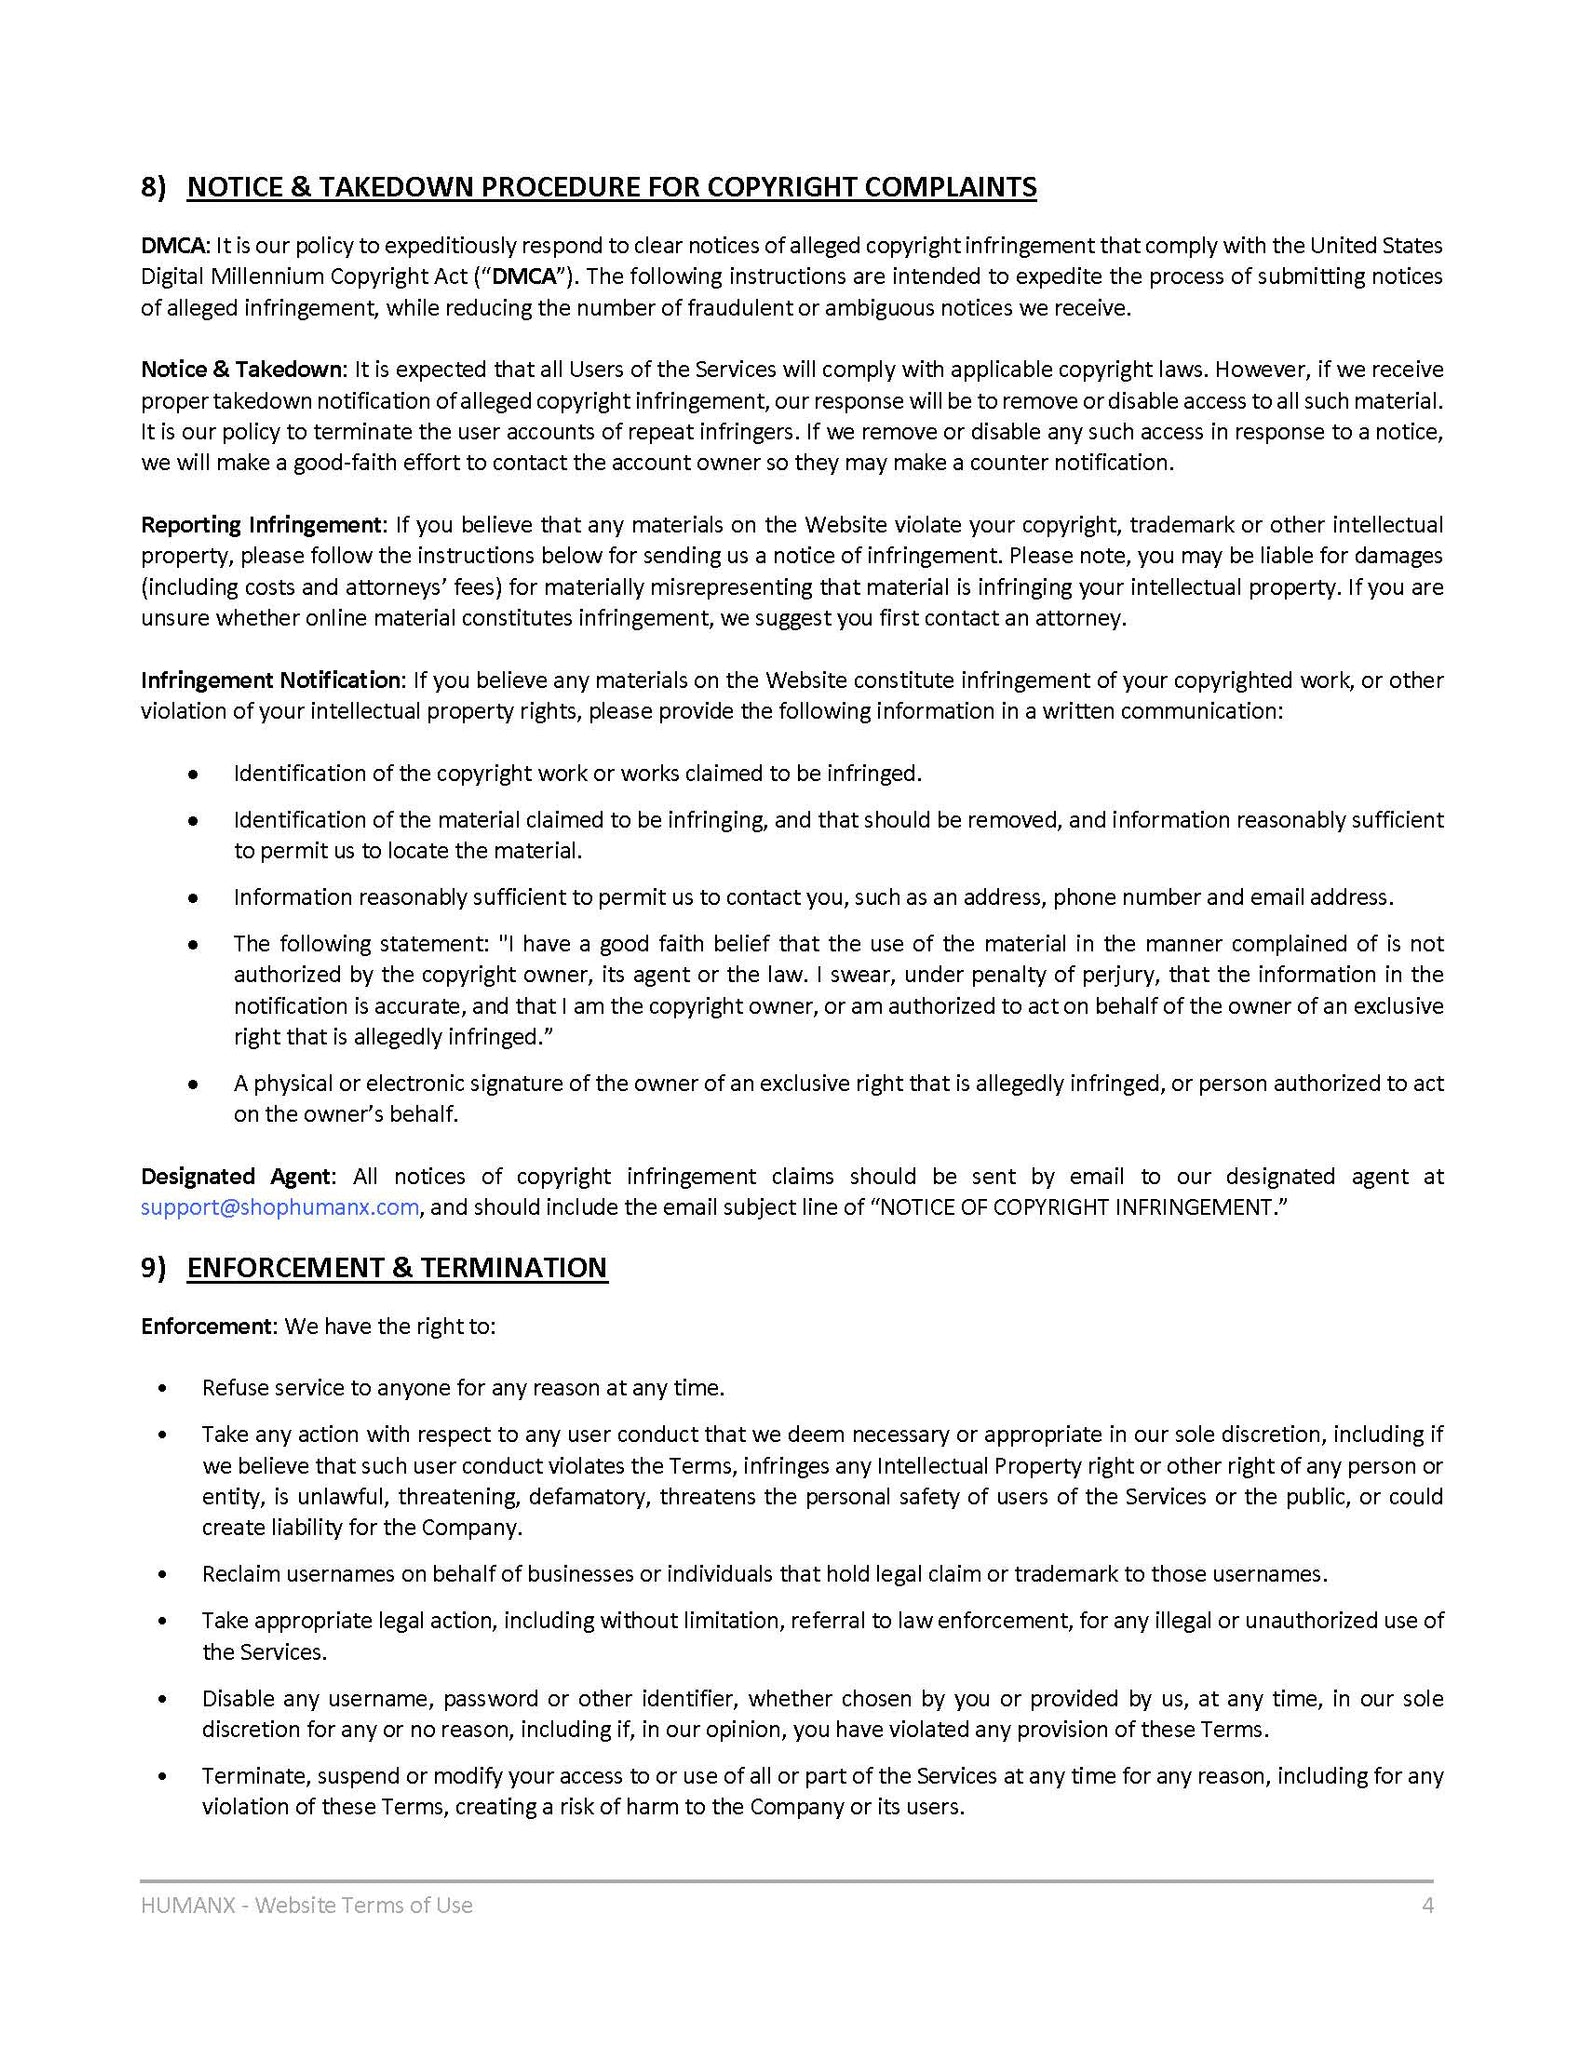 Terms of Use - Page 4